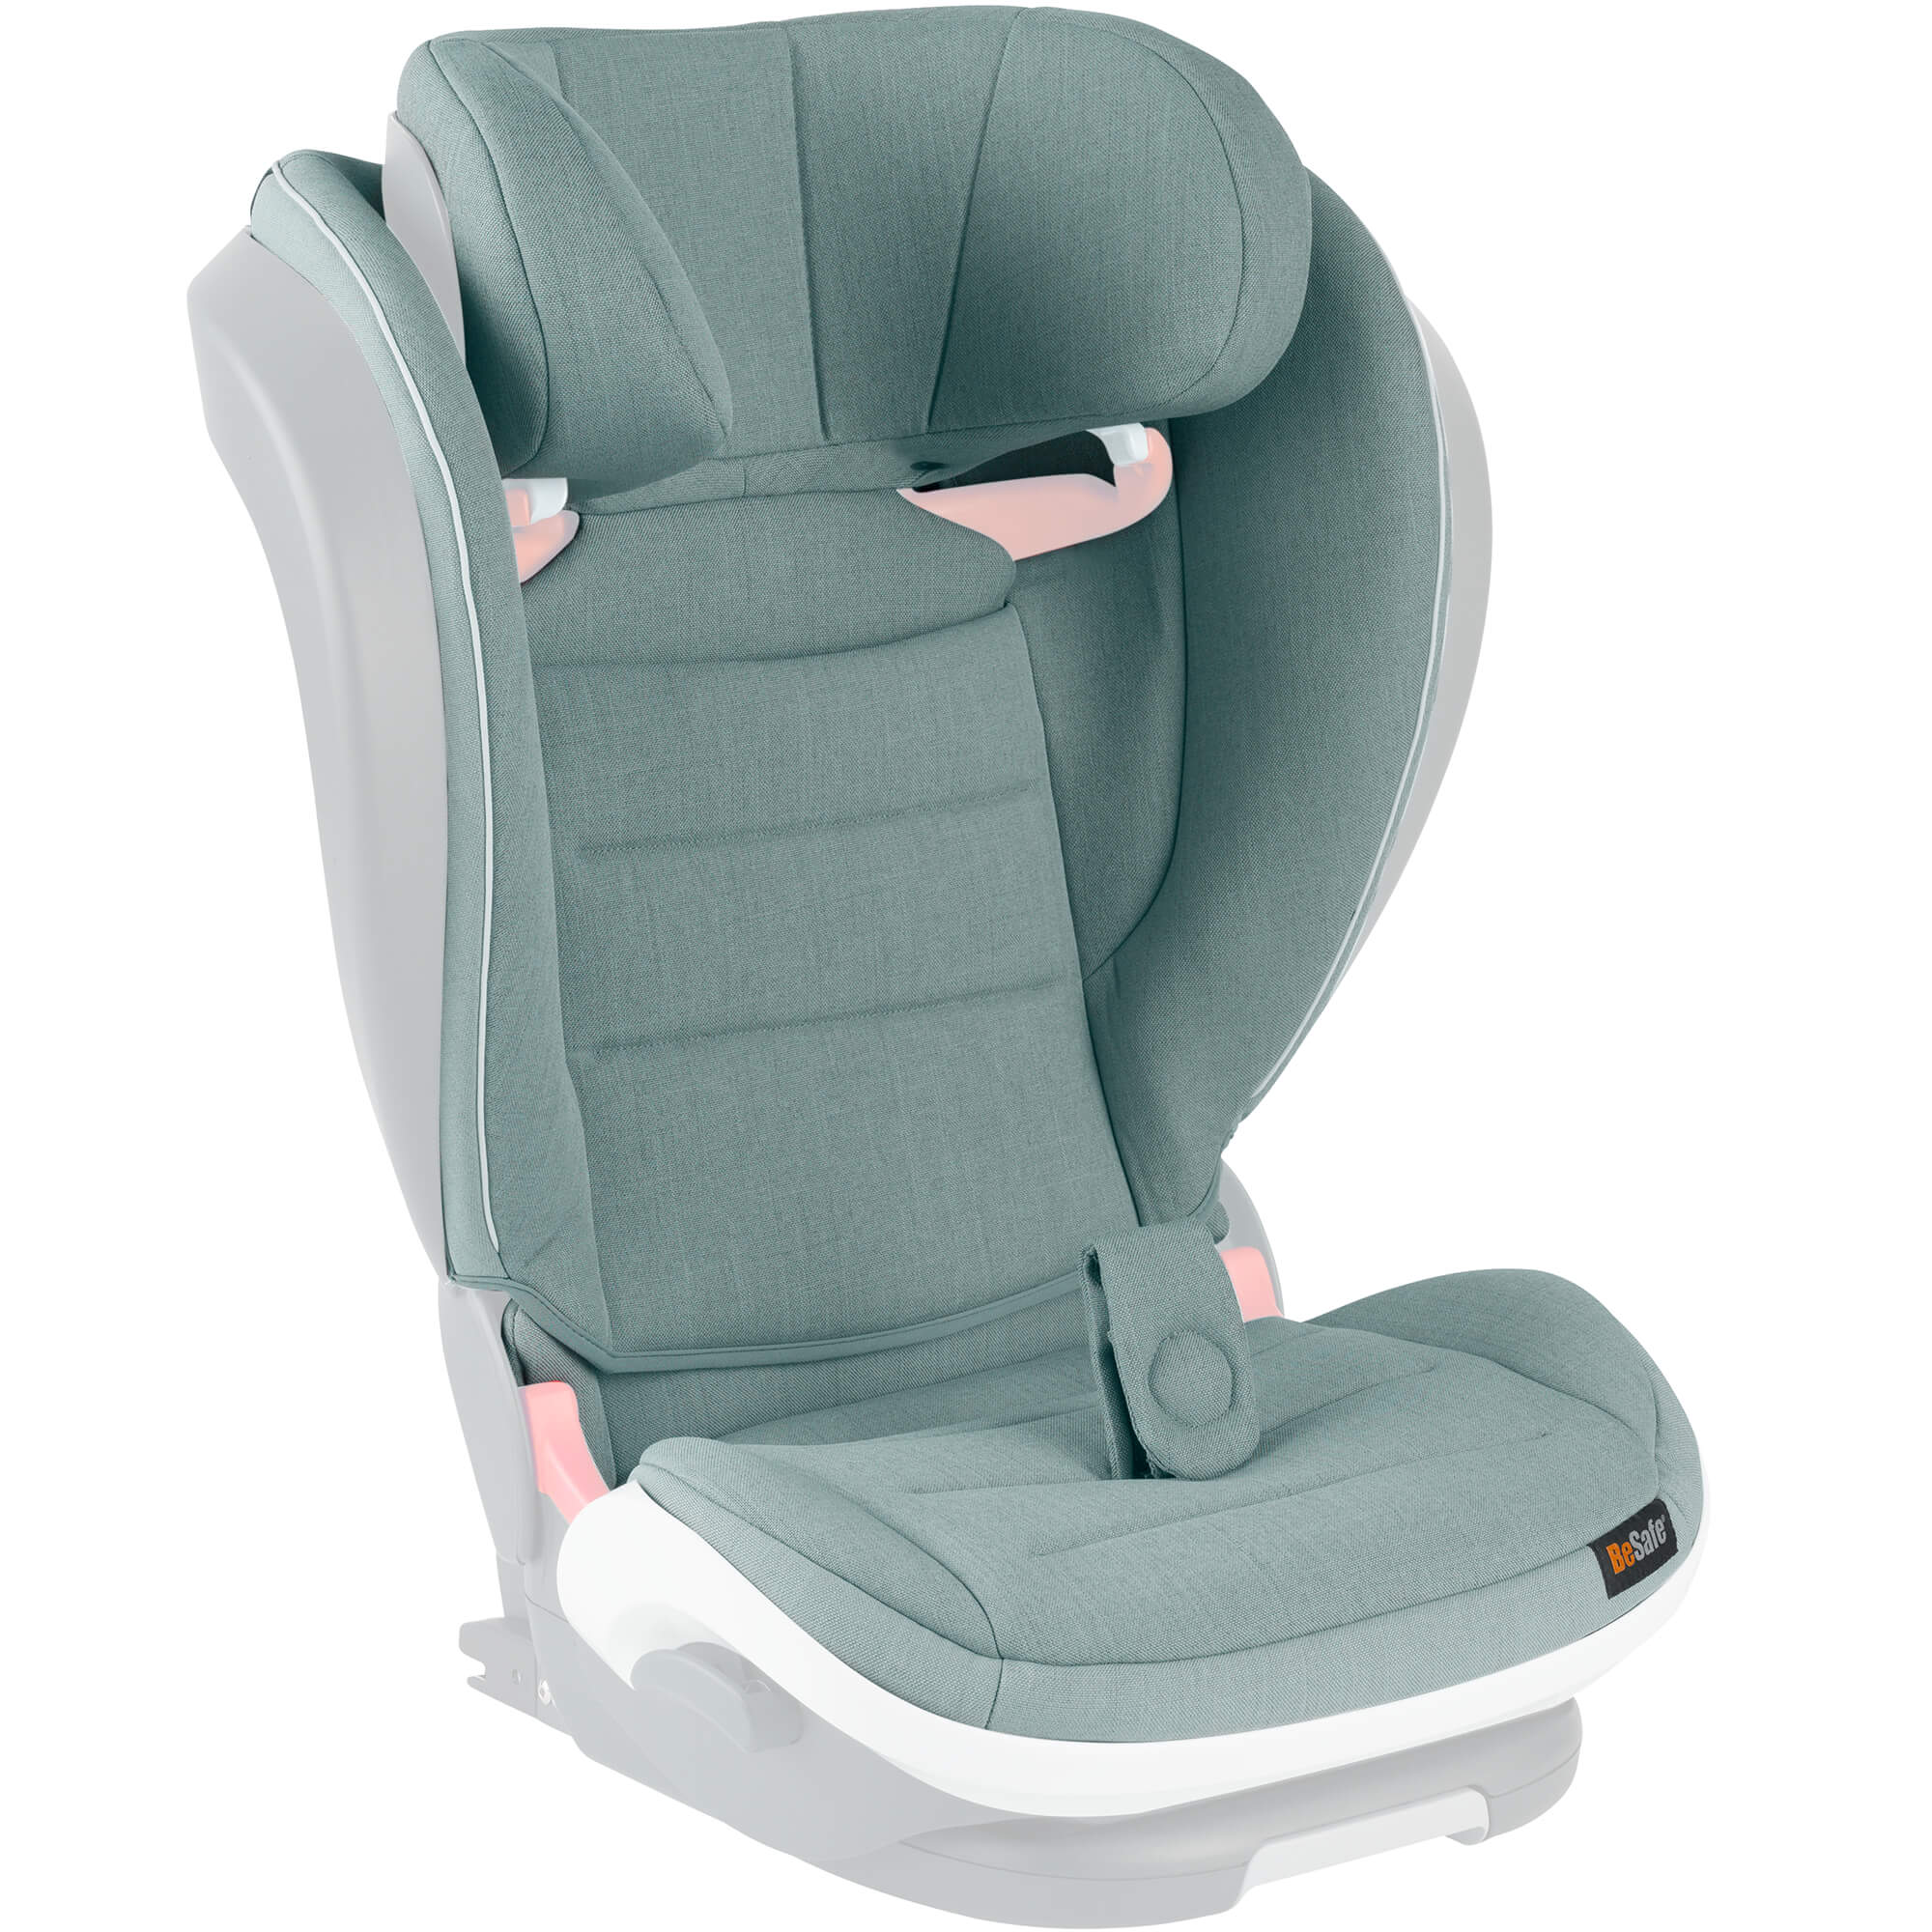 Miraculous Besafe Seat Cover Izi Flex Fix I Size Sea Green Melange Frankydiablos Diy Chair Ideas Frankydiabloscom